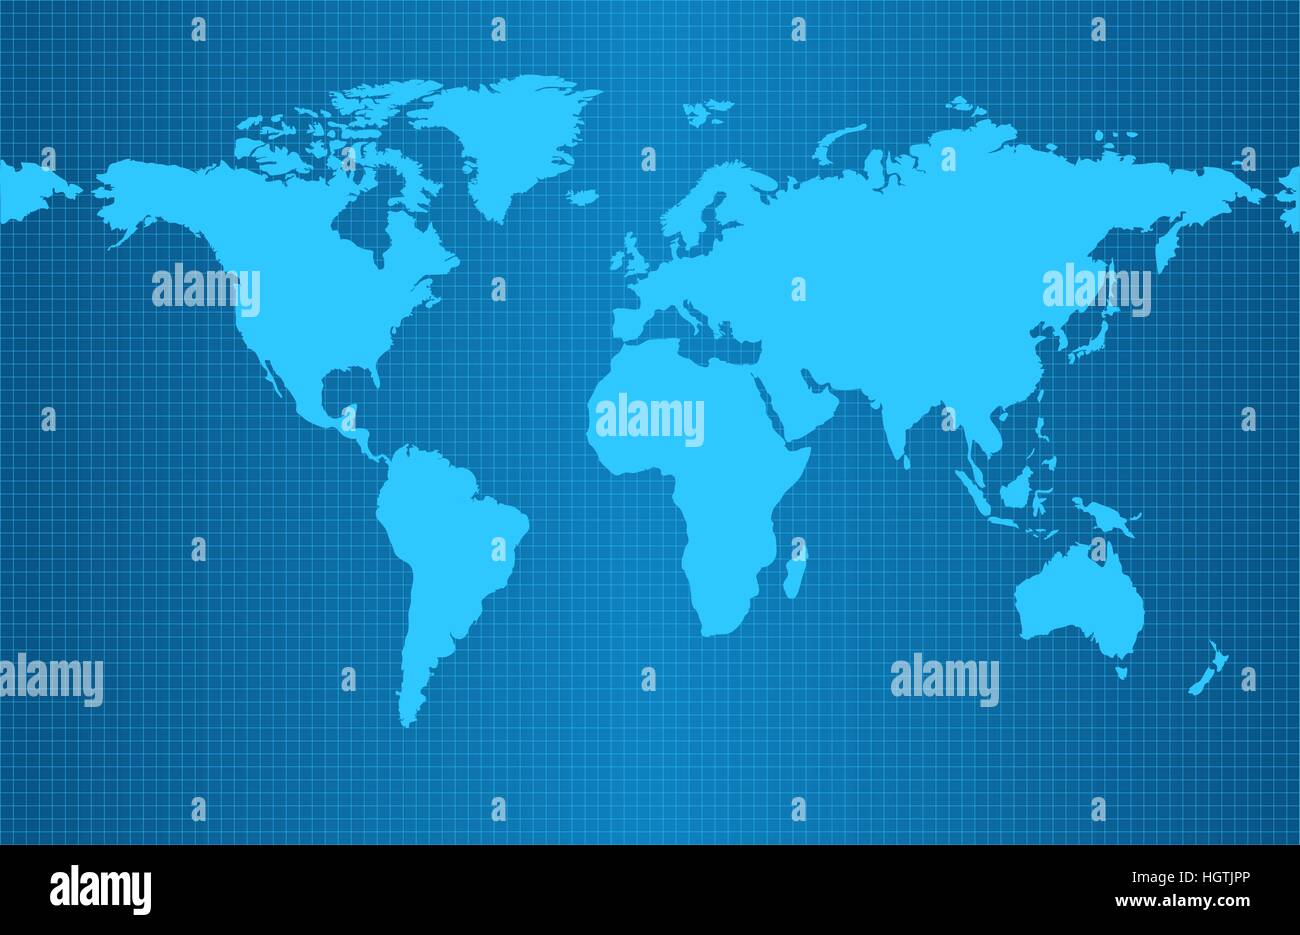 Earth map on blue gradient background with grid and all major earth continents - Eurasia, North and South America, - Stock Image